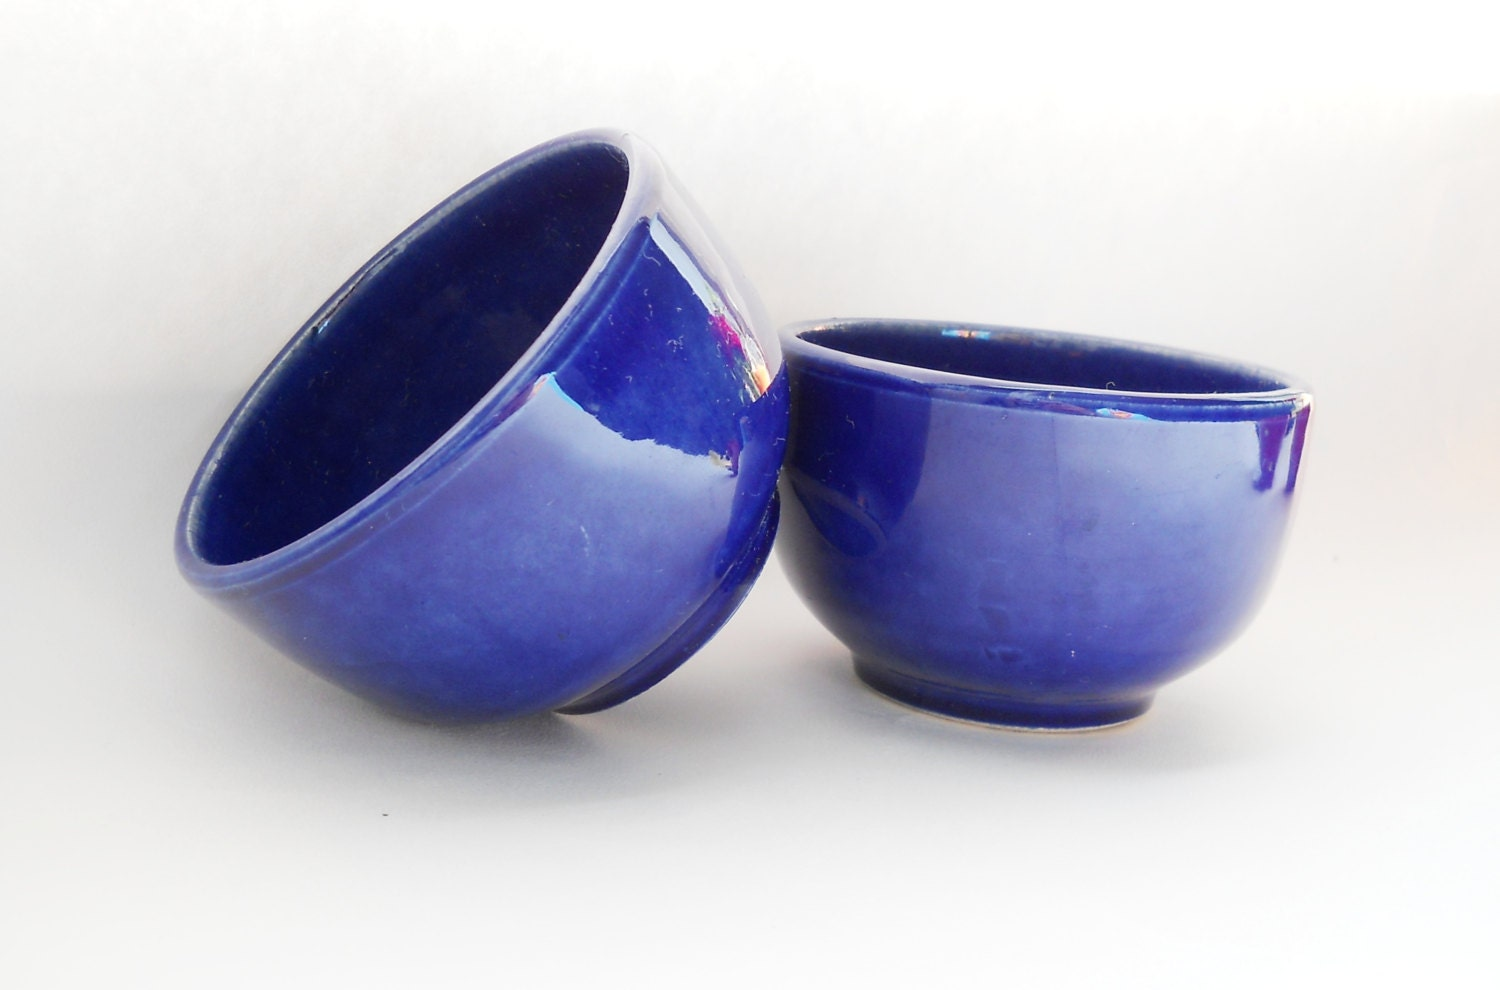 Set Of 2 Pottery Cup Kitchen Decor Cobalt Bright Blue Ceramic